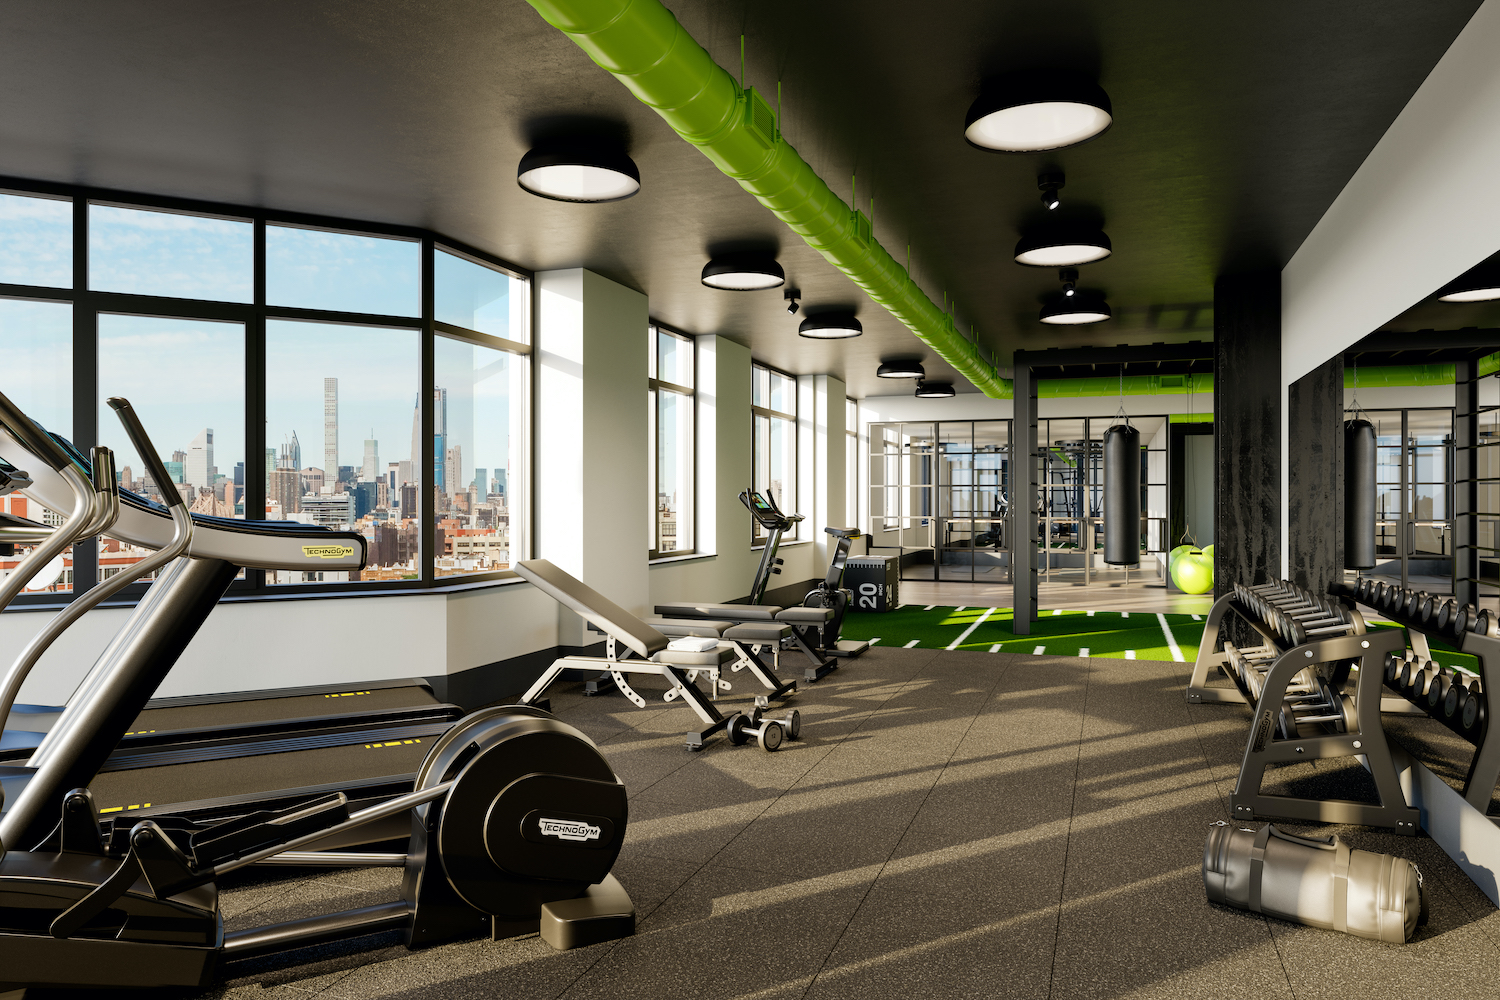 Gym at The Astor LIC, at 36-20 Steinway Street in Queens